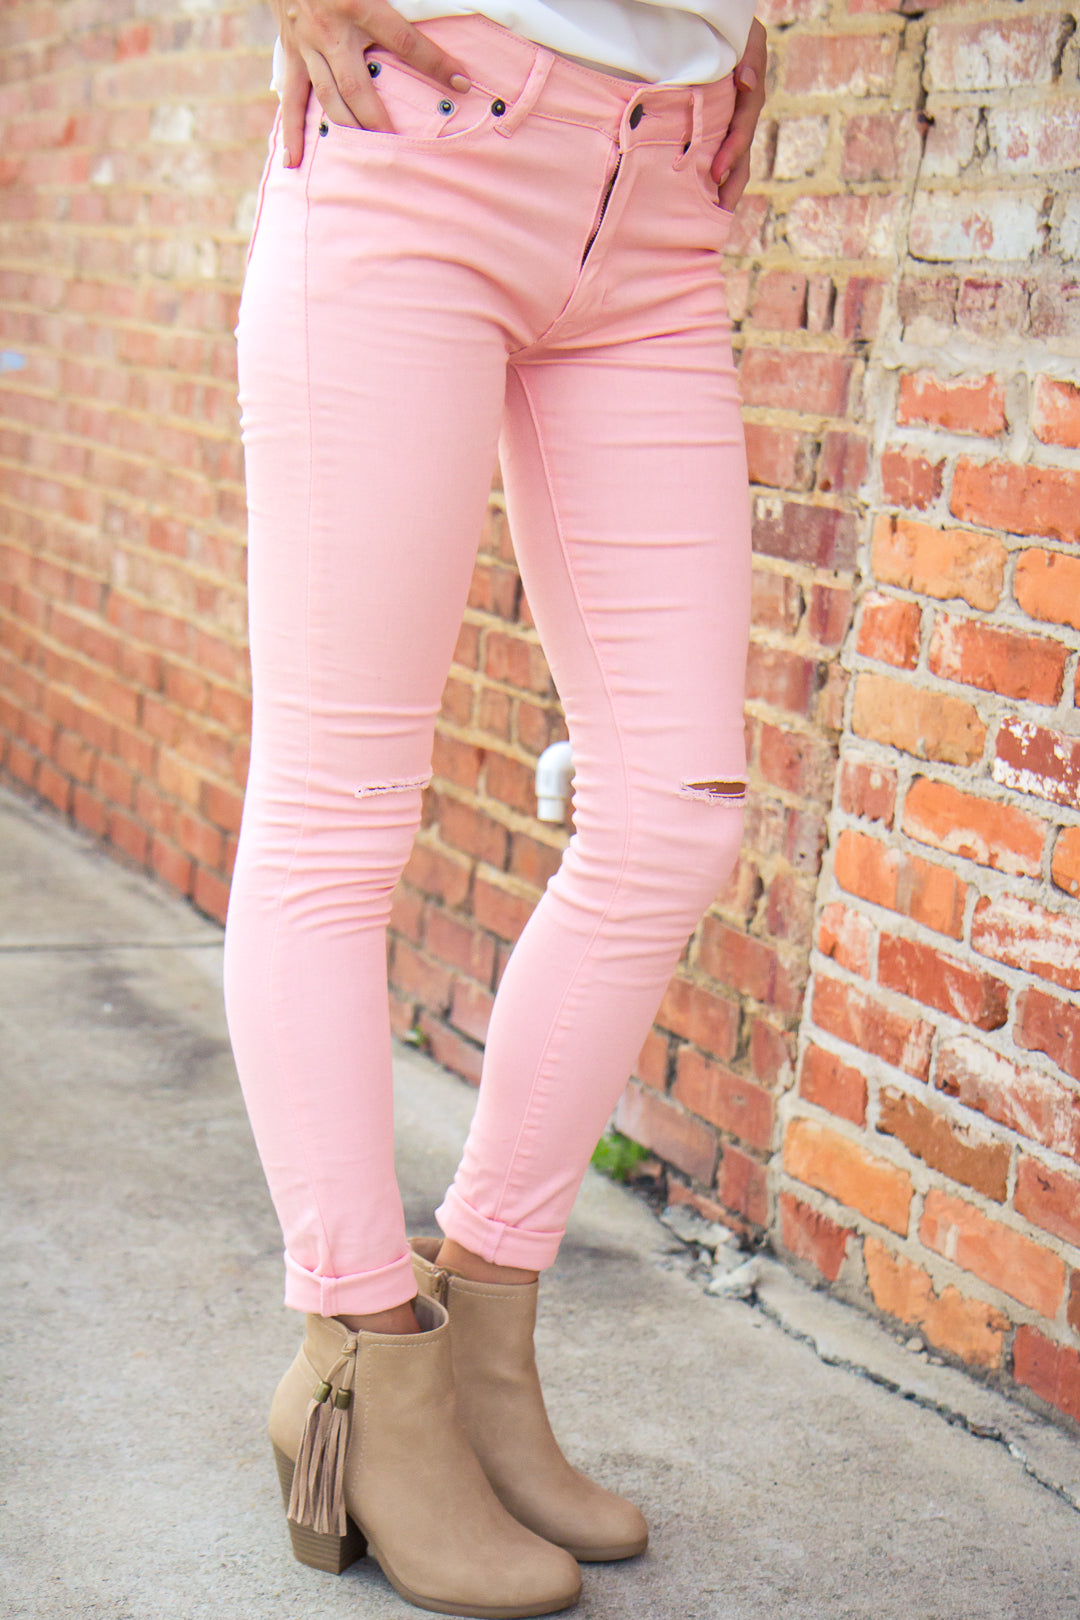 Hollywood Crush Pants - Pink - Final Sale